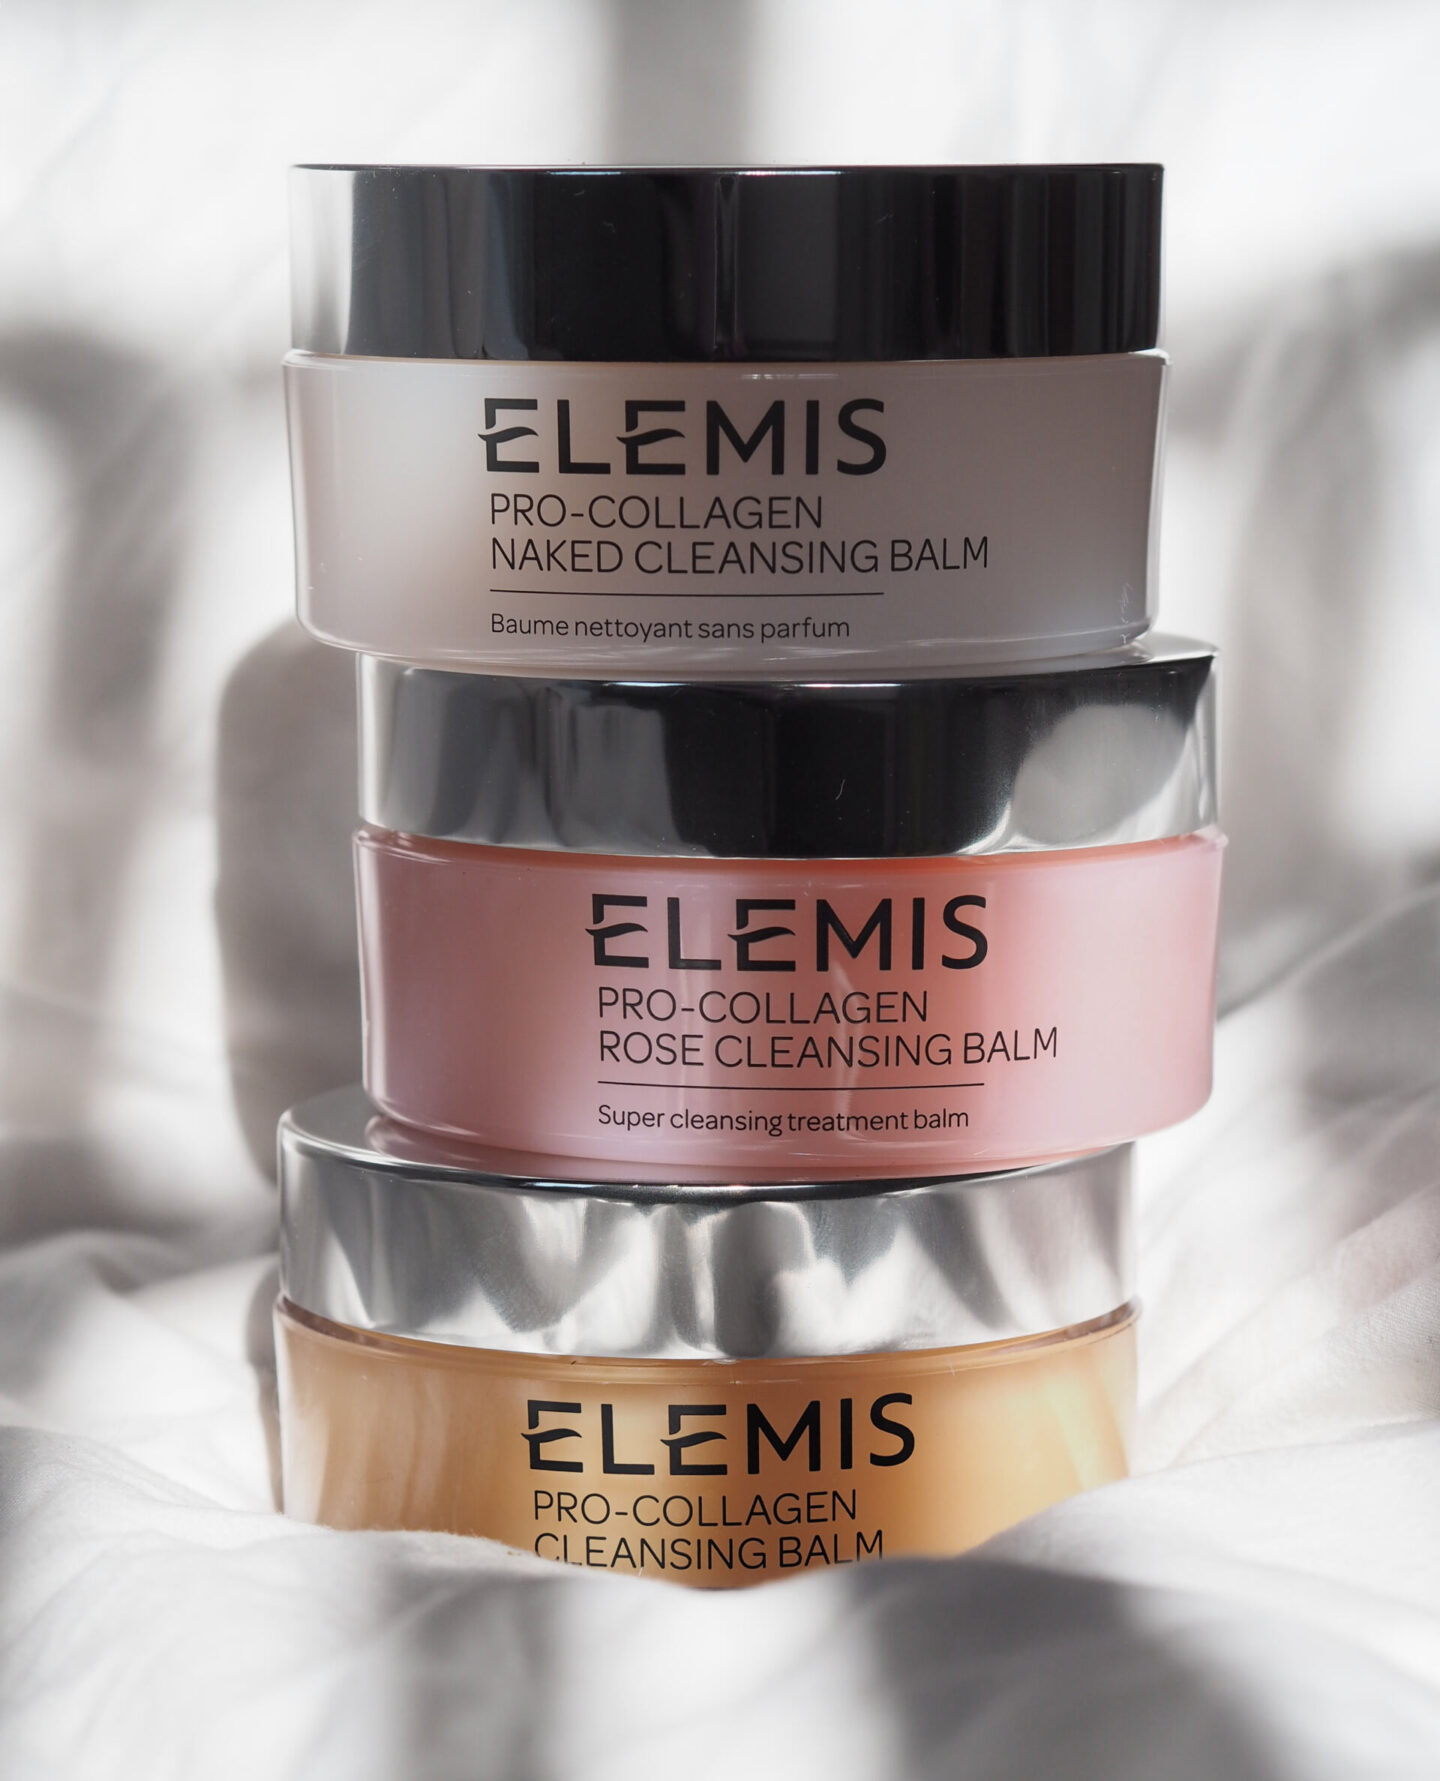 Elemis Pro Collagen cleanser comparison